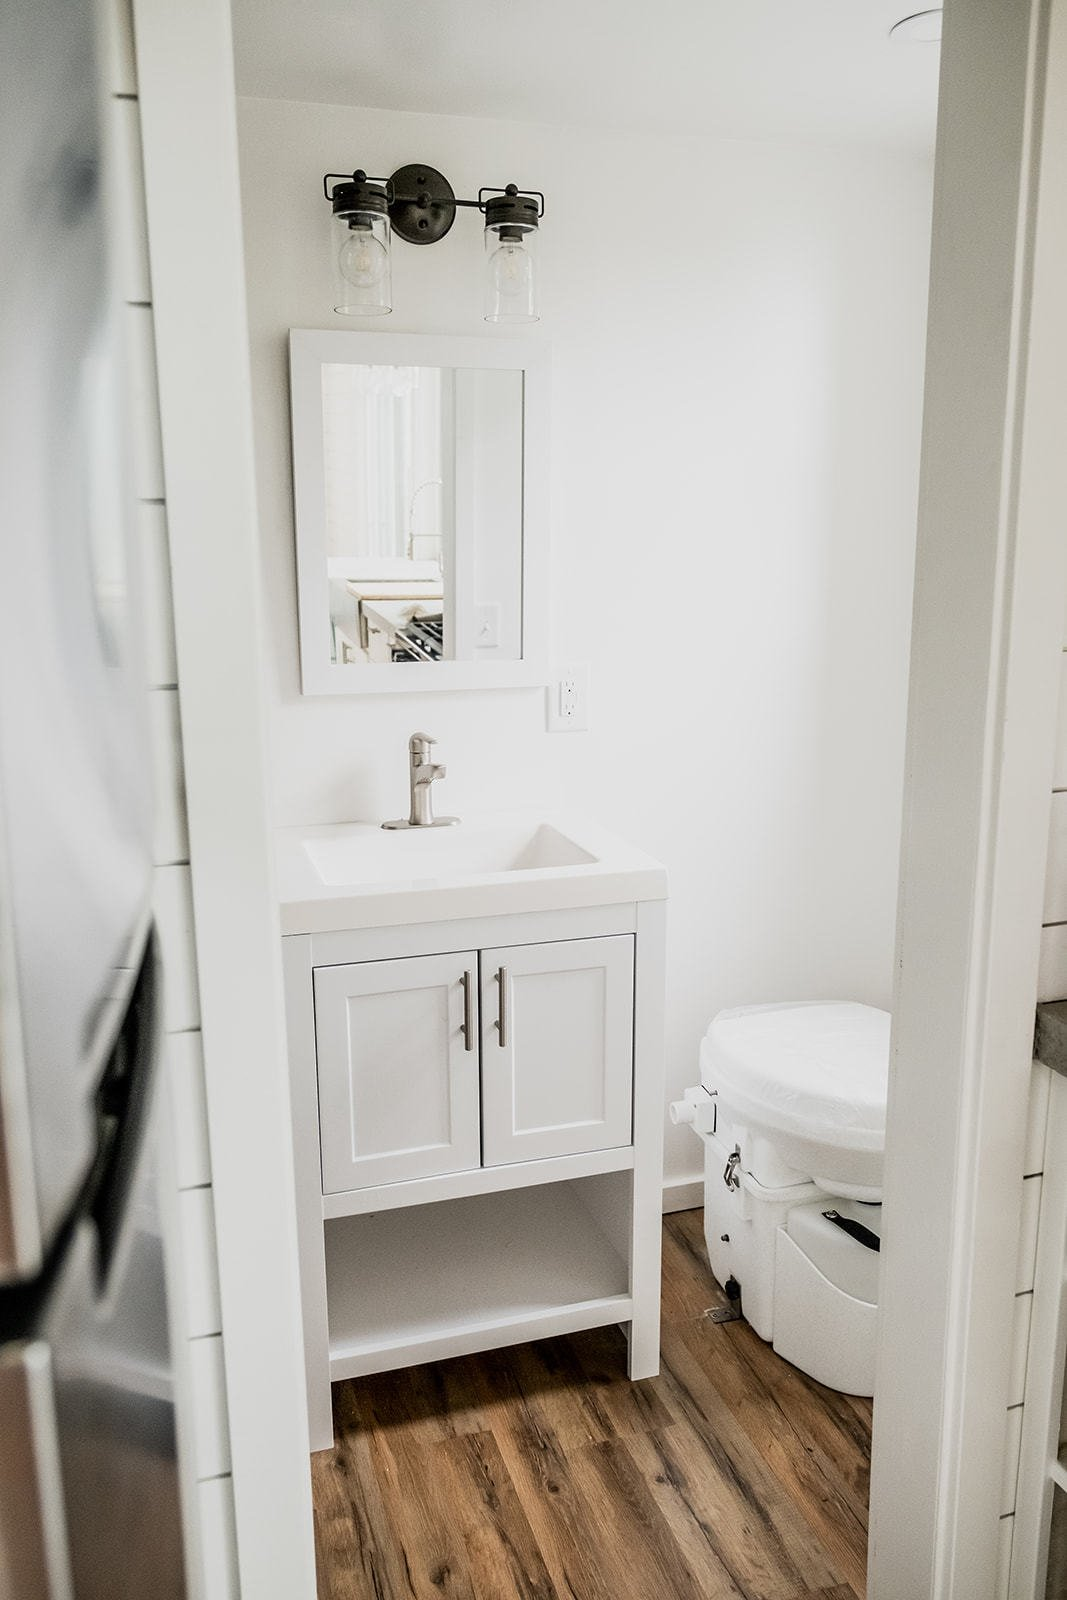 Bath, Granite, Wall Mount, Vessel, One Piece, Medium Hardwood, Wall, and Accent Both traditional and composting toilets are available to accommodate off-grid living.  Bath Vessel Accent One Piece Photos from A Hawaii-Based Couple Build a Luminous Tiny House in Just 25 Days